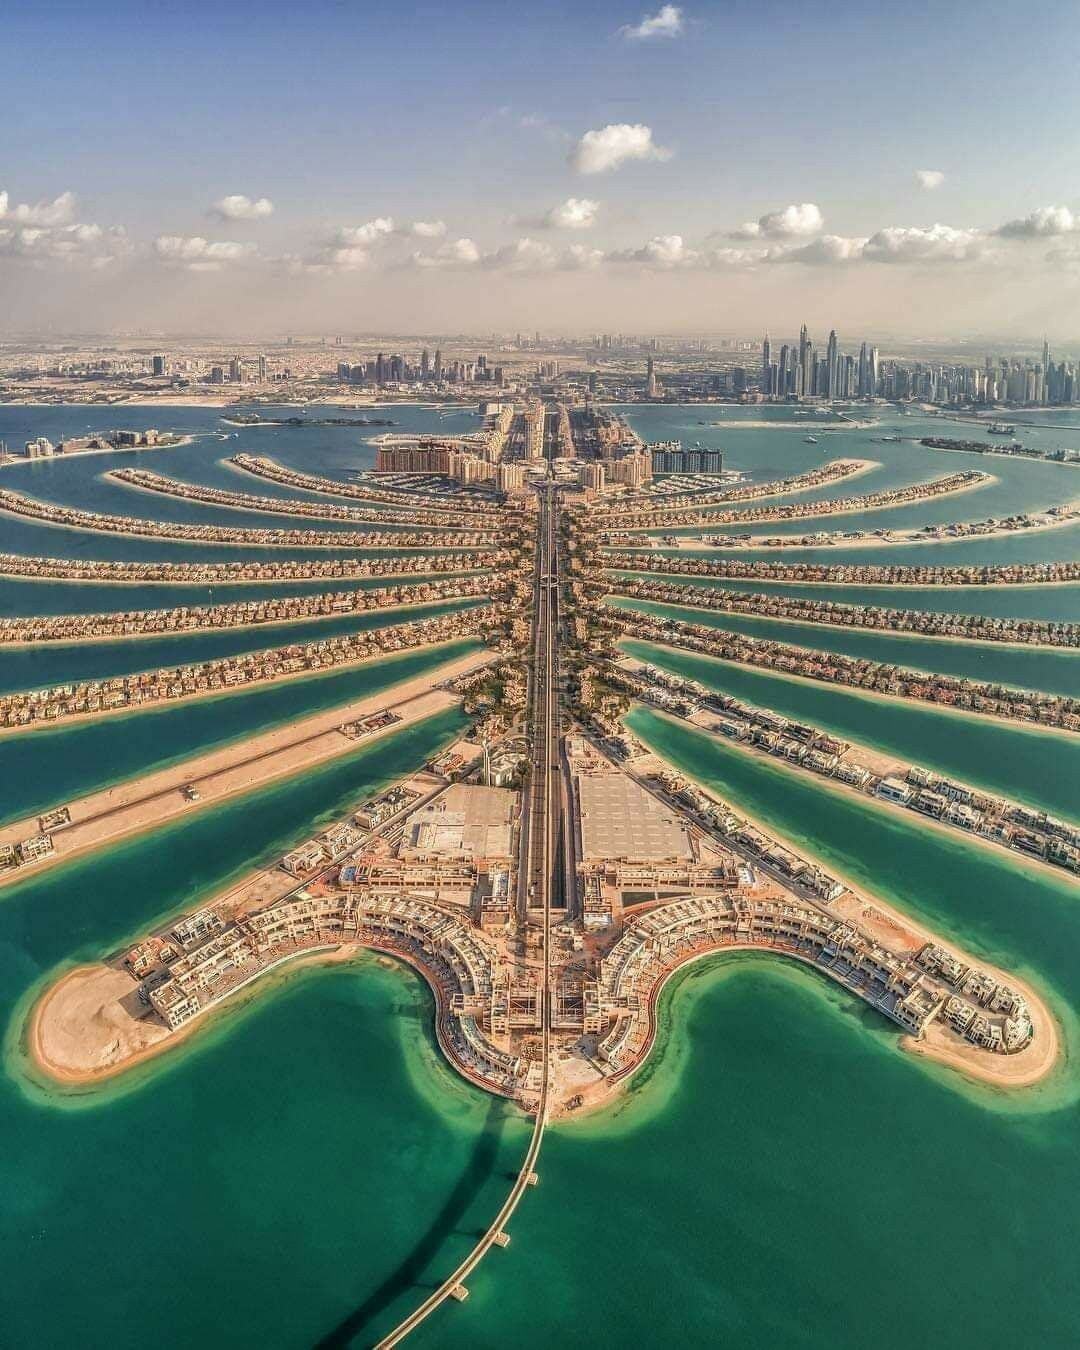 Pin by Hamed Alshabibi on Amazing Arab life in 2020 Palm